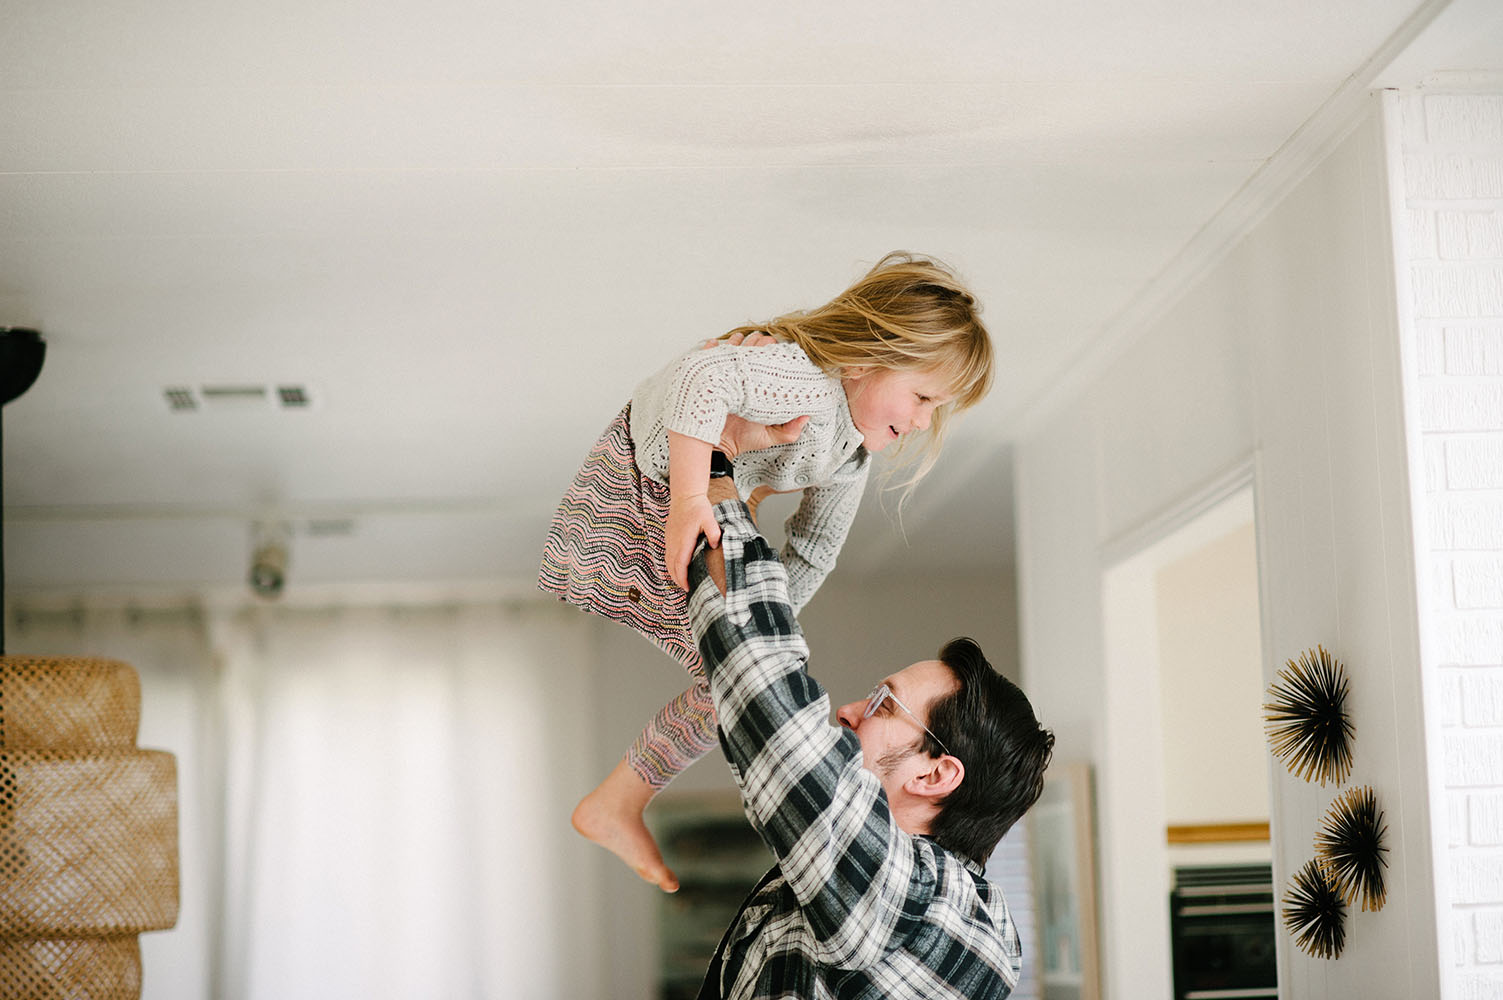 Dad lifting little girl in the air